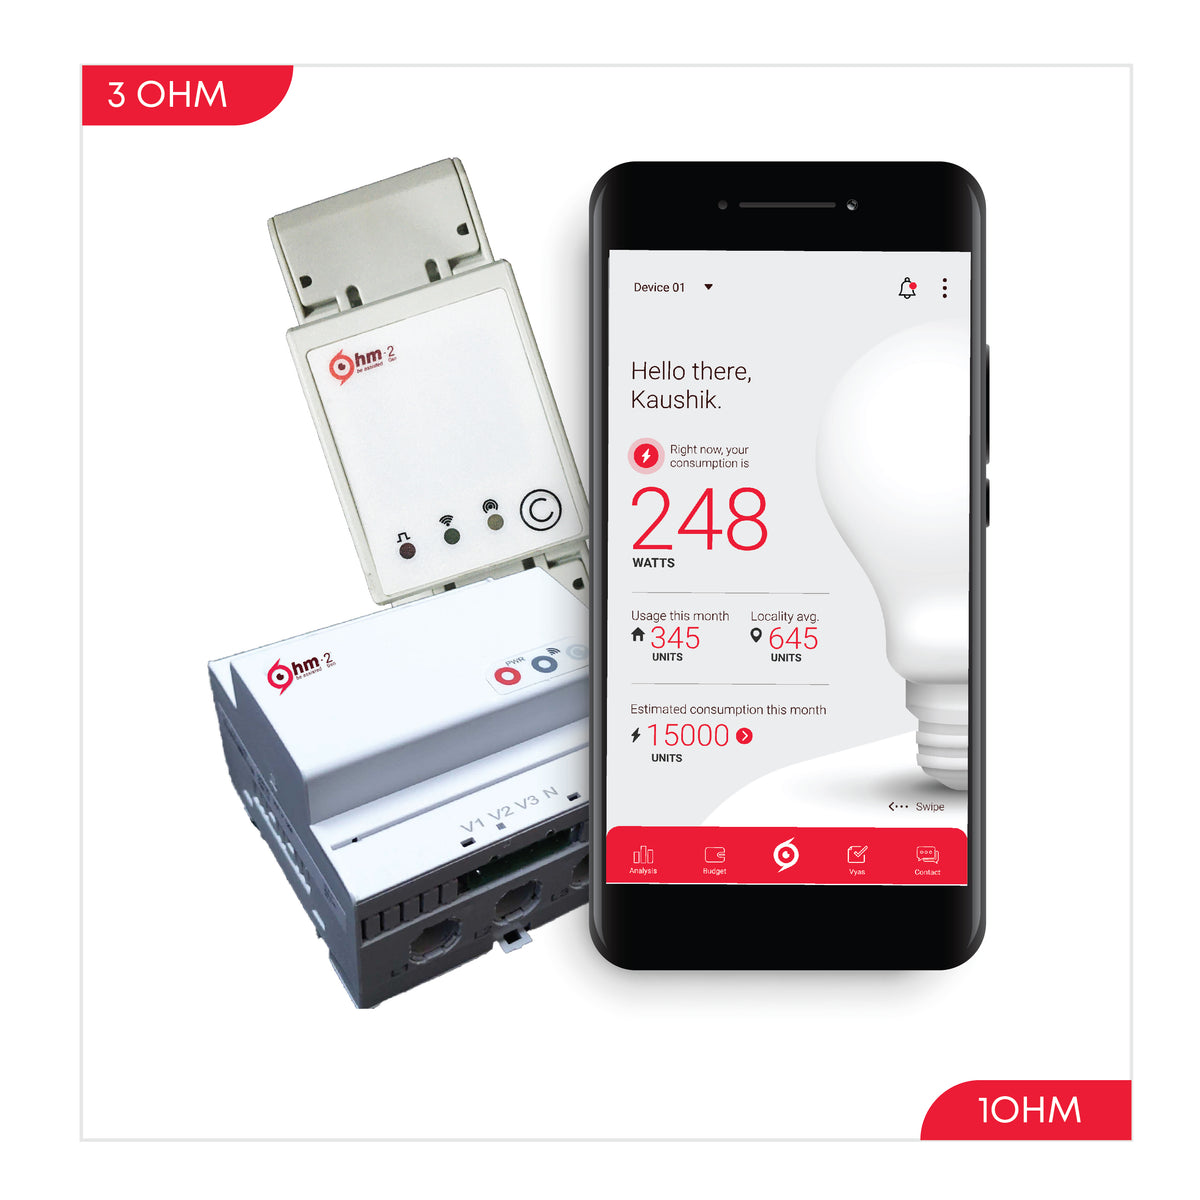 ohm assistant, analysis, analytics, sustlabs, appliaces, appliance detection, energy monitor, power monitor, power saver, electricity monitoring device, smart meter, electricity meter, smart energy meter, know you energy, buy smart meter,